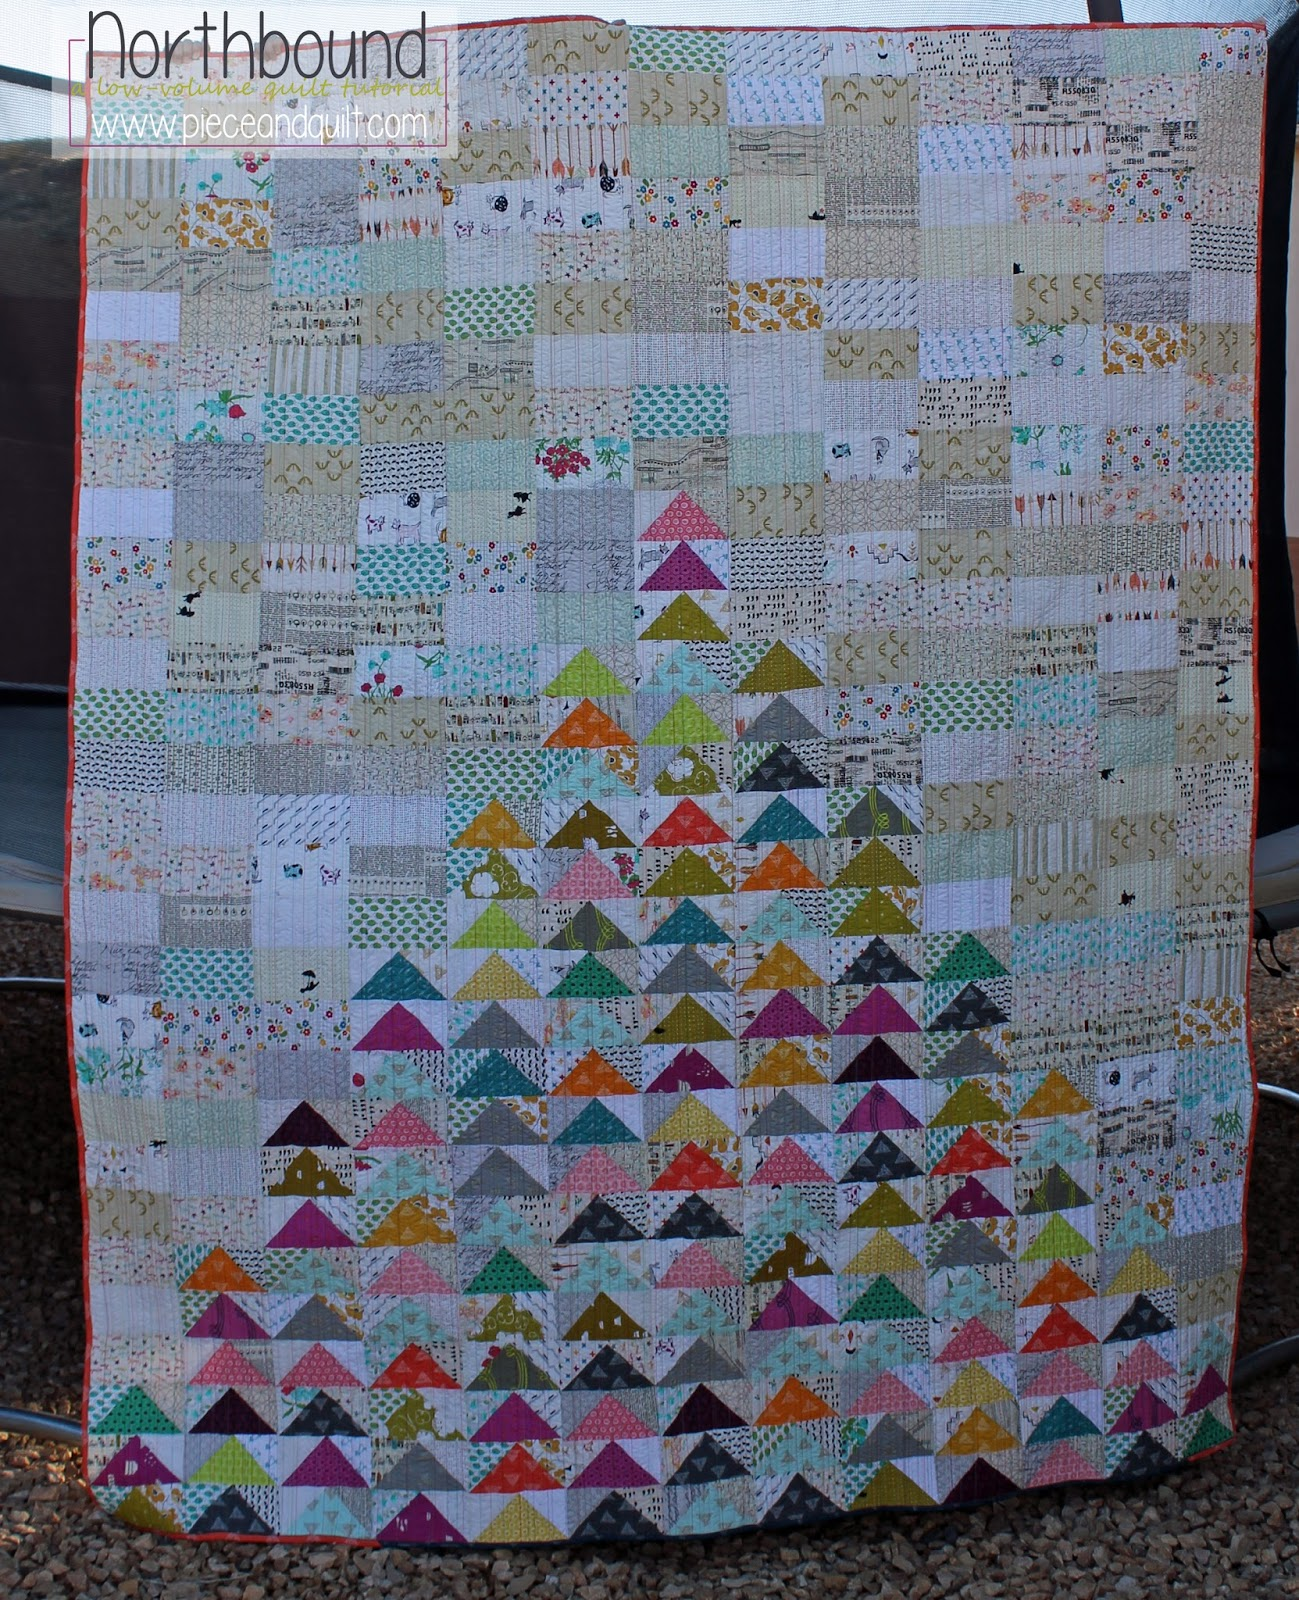 Piece n quilt northbound a low volume quilt tutorial the quilt was so much fun to make i thought id share a little tutorial with you today baditri Choice Image